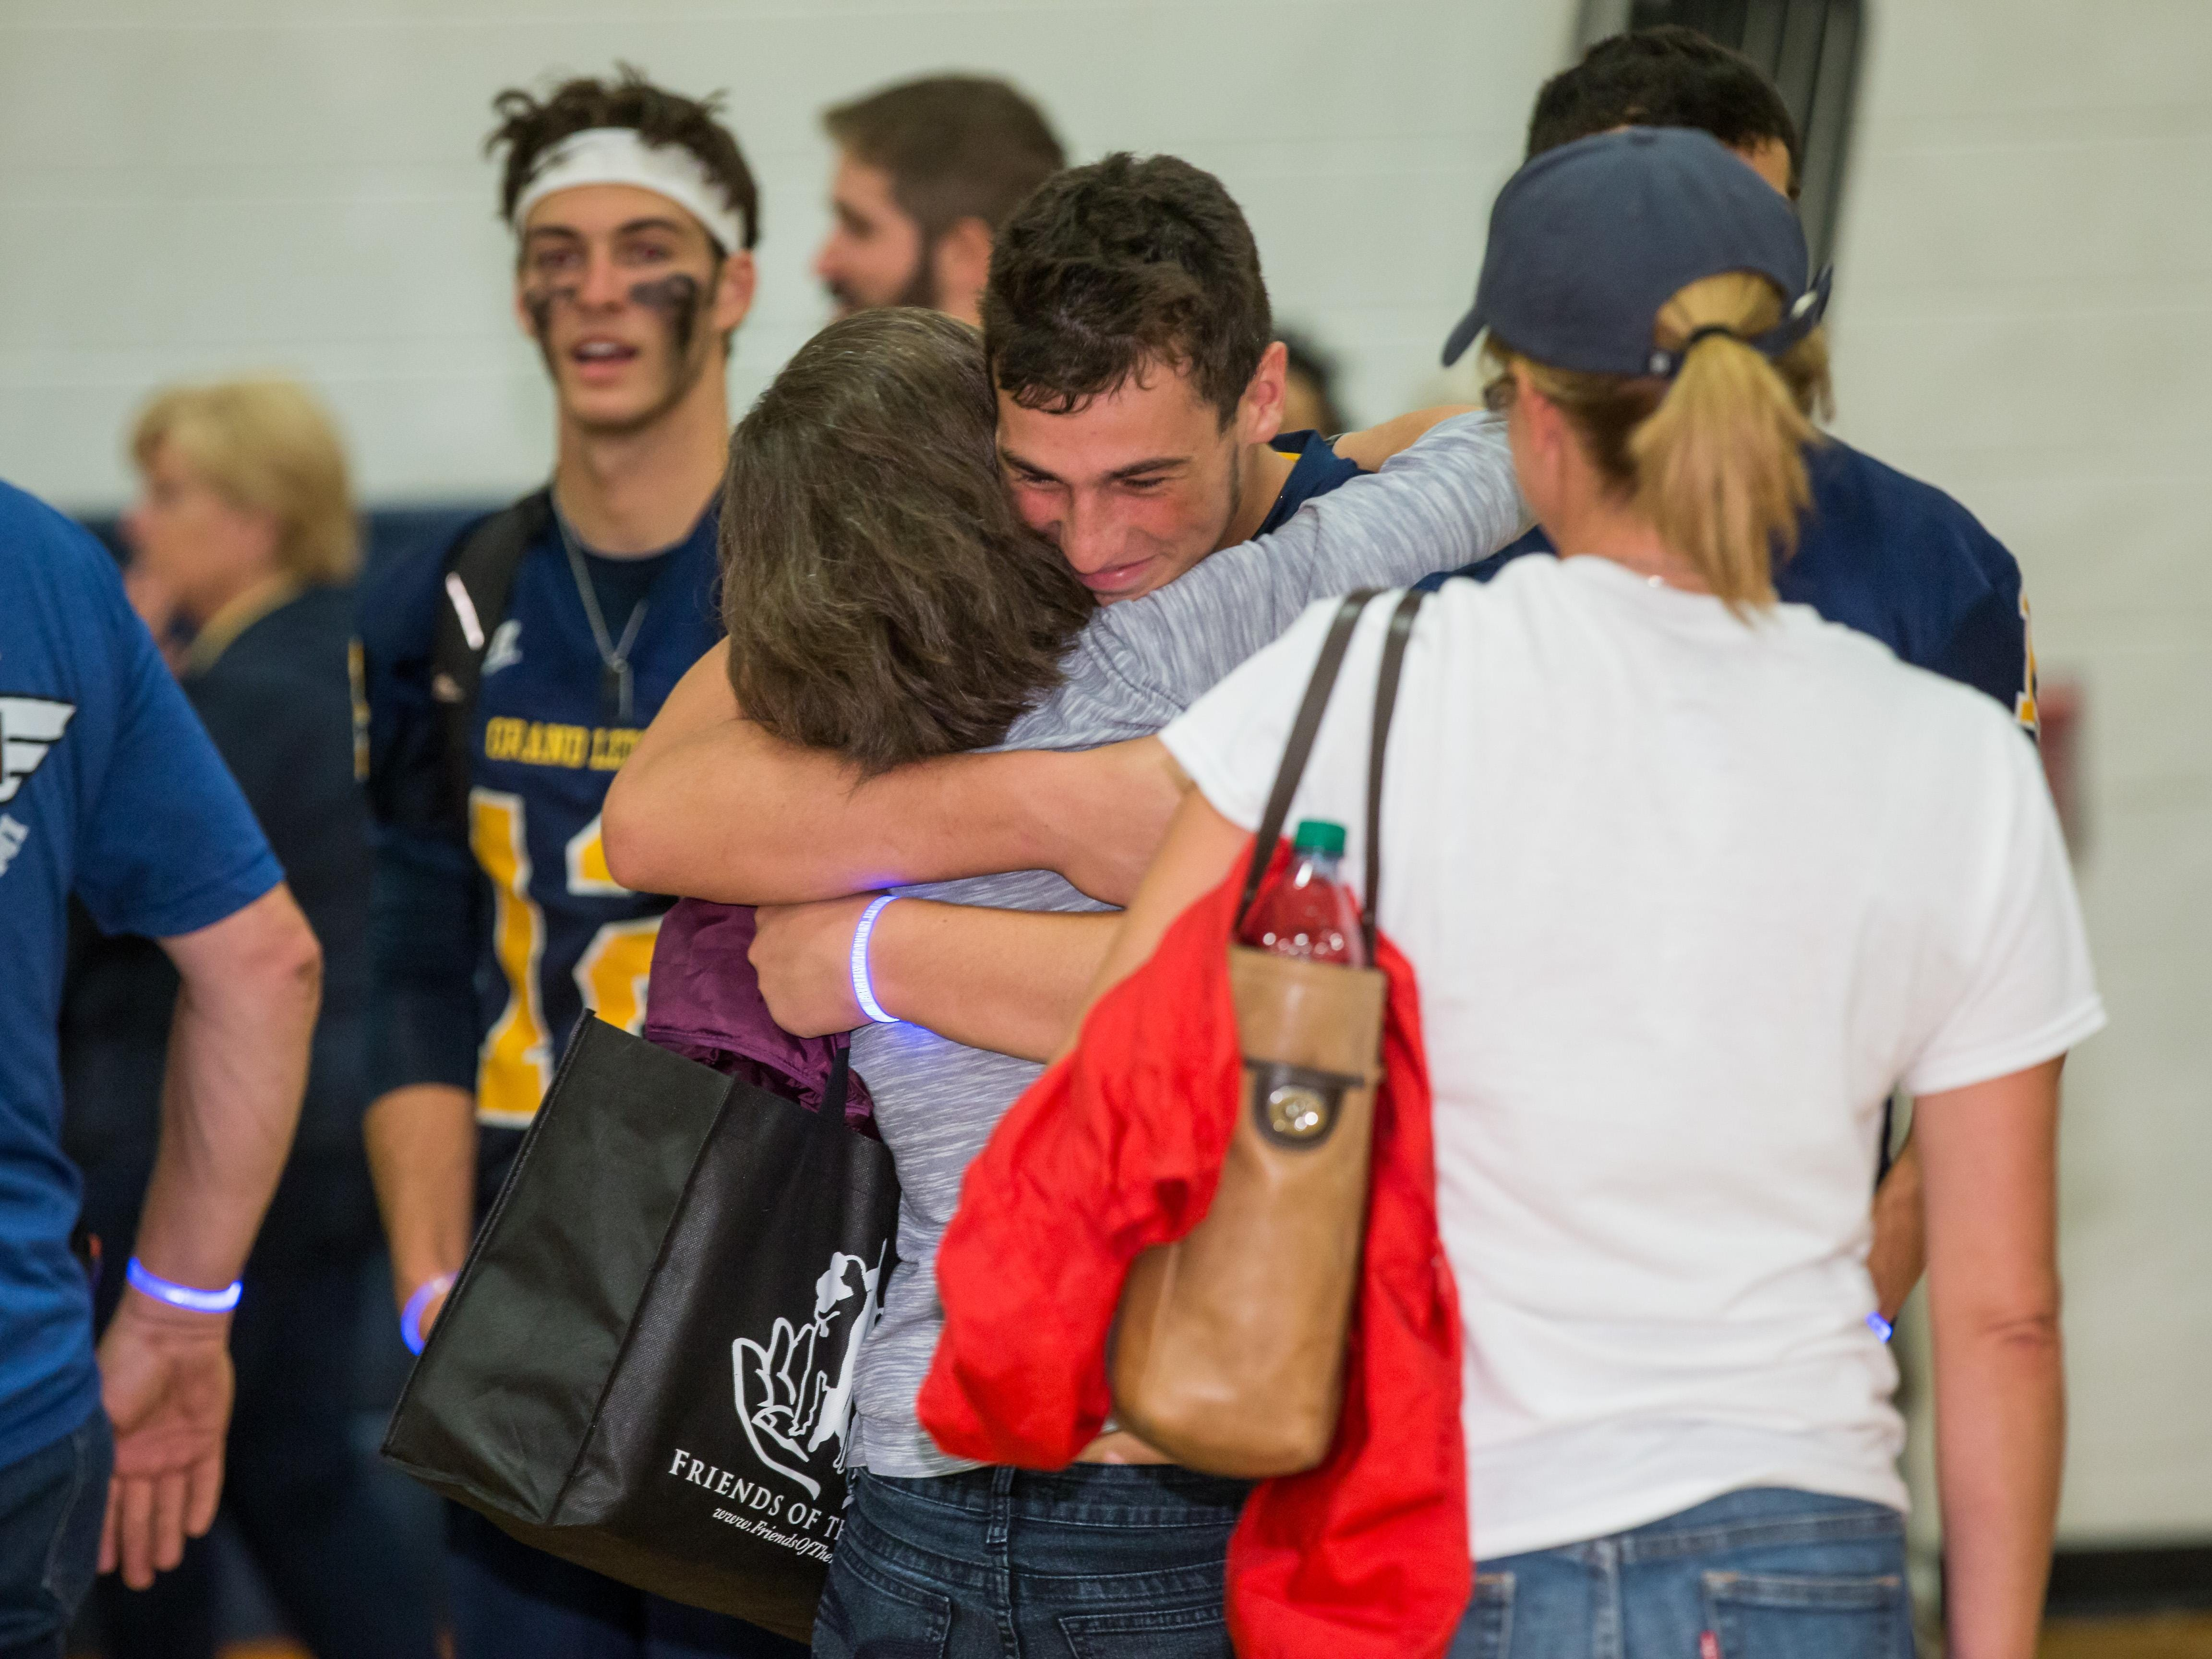 A Grand Ledge football player hugs the family member of a fallen soldier following Friday's football game against Okemos.